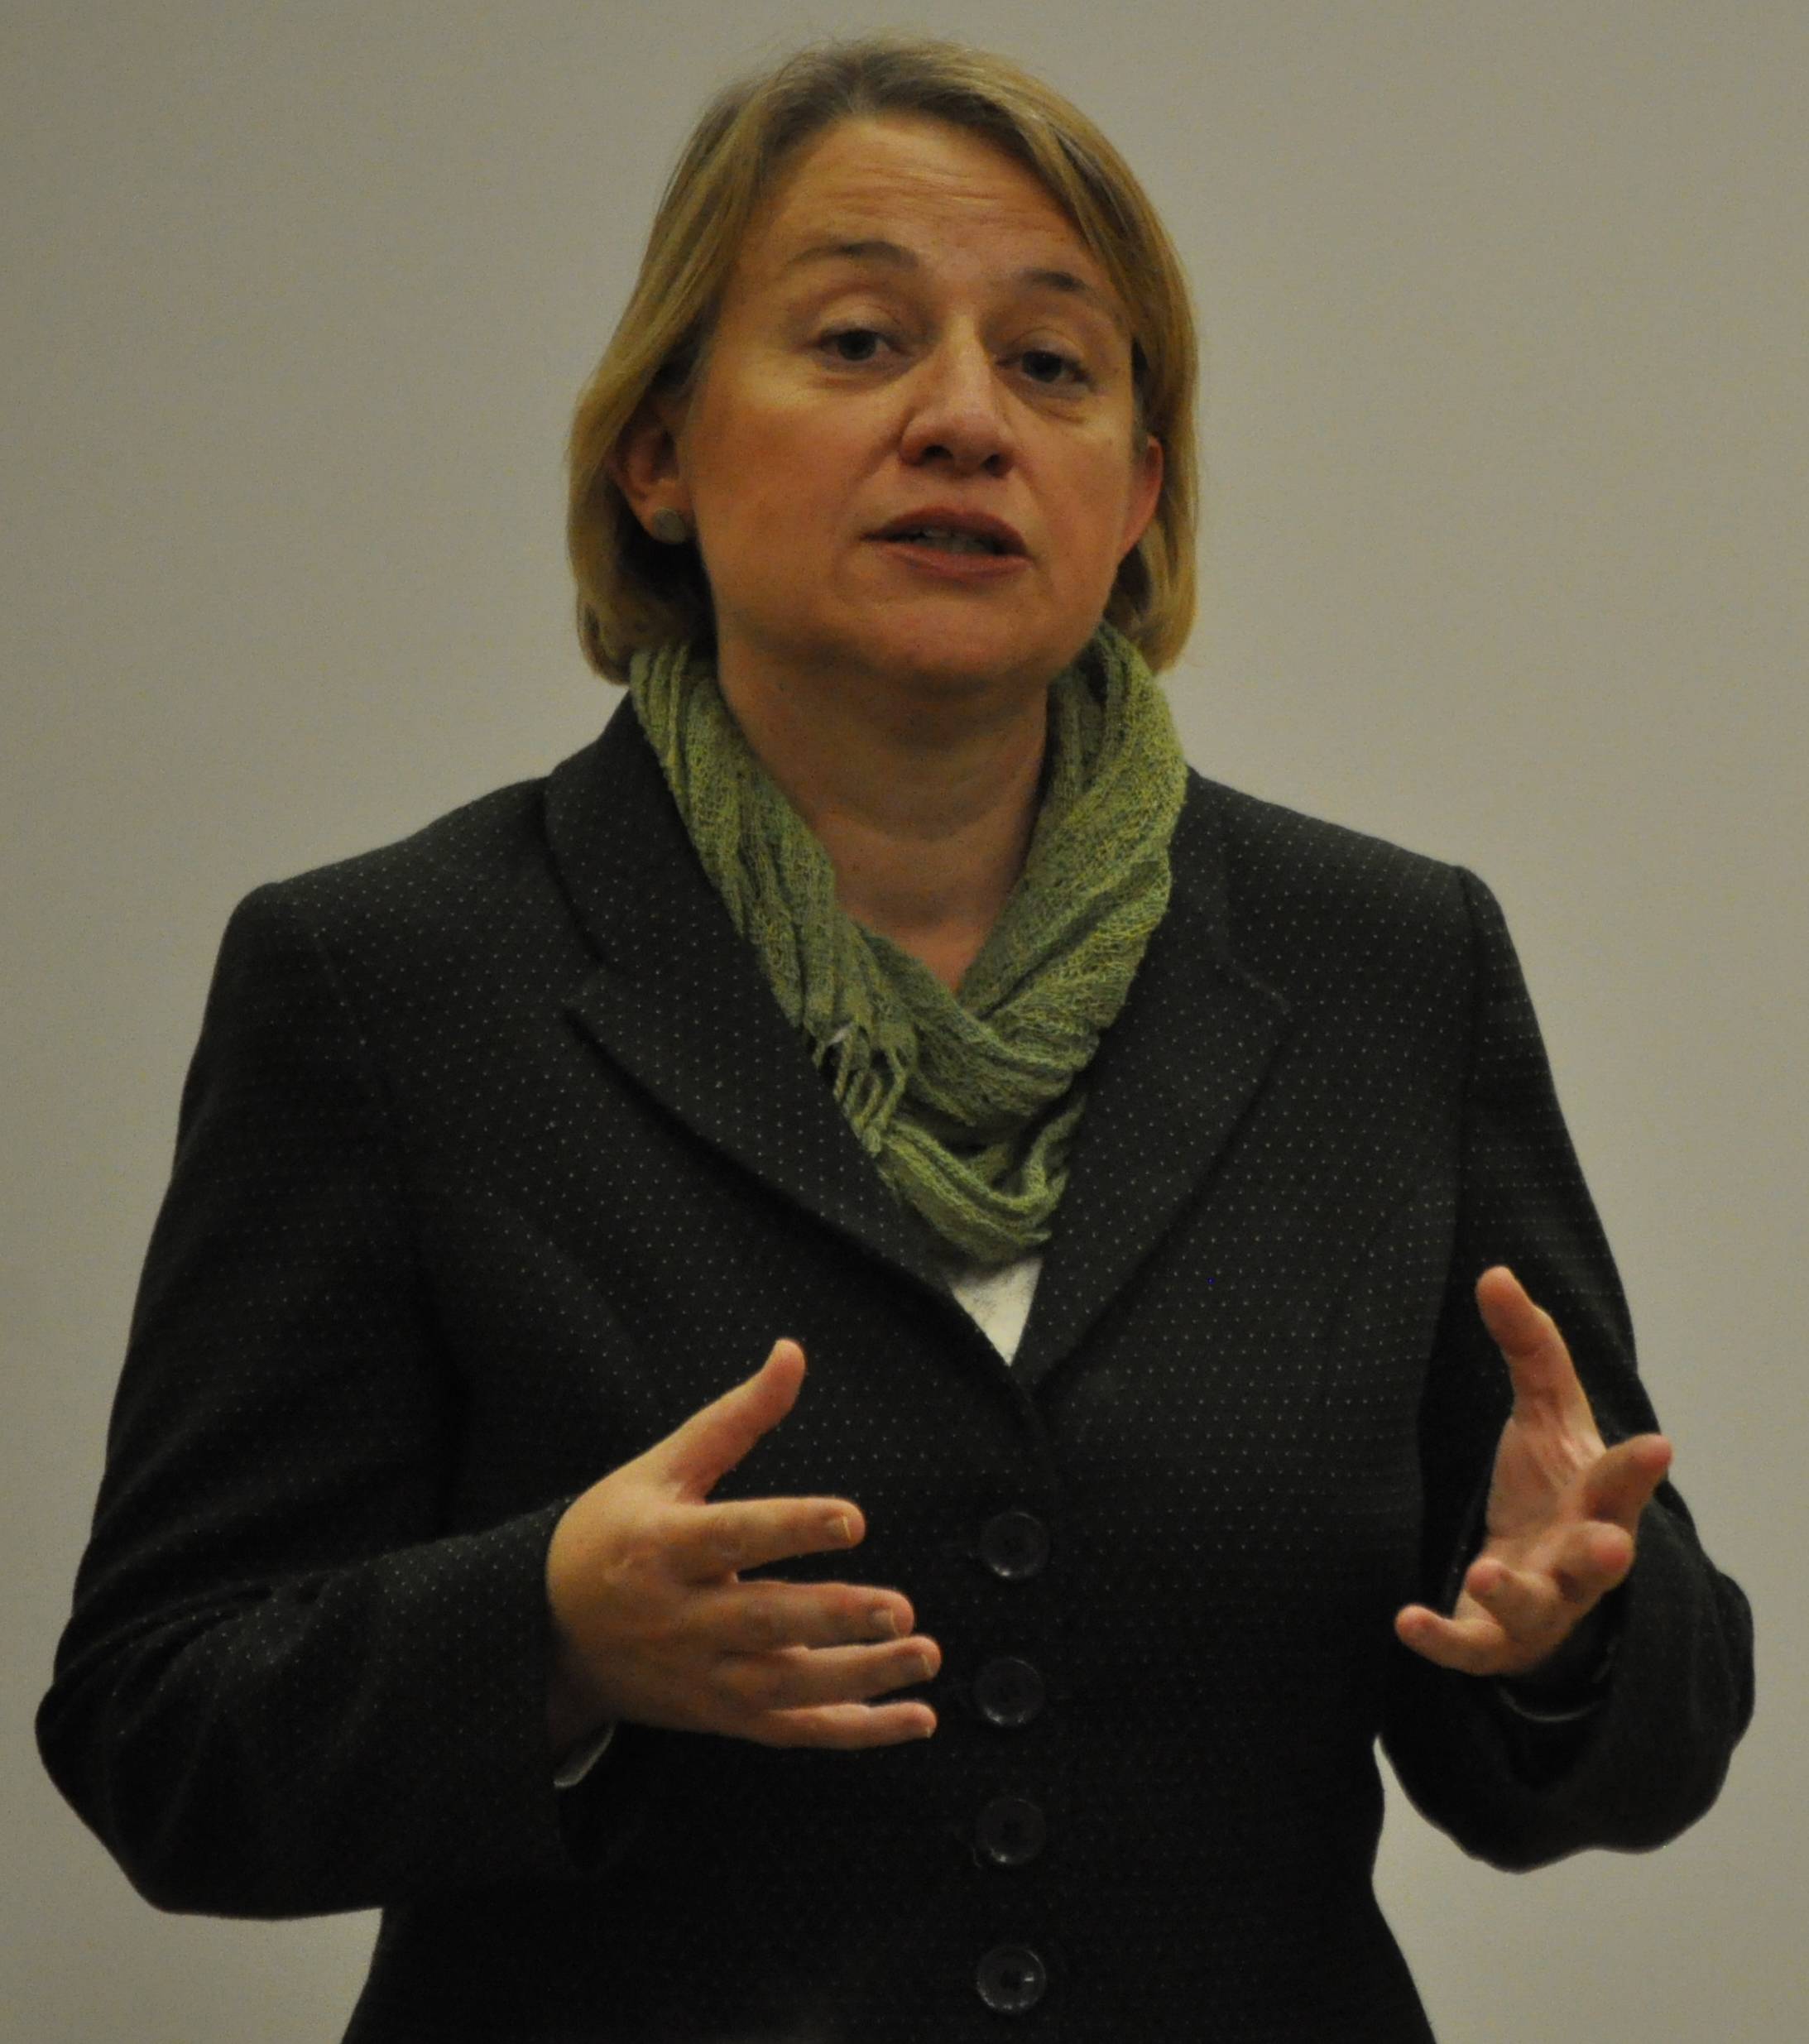 Natalie Bennett, Green Party Leader, at the Sheffield Greens AGM 2013,